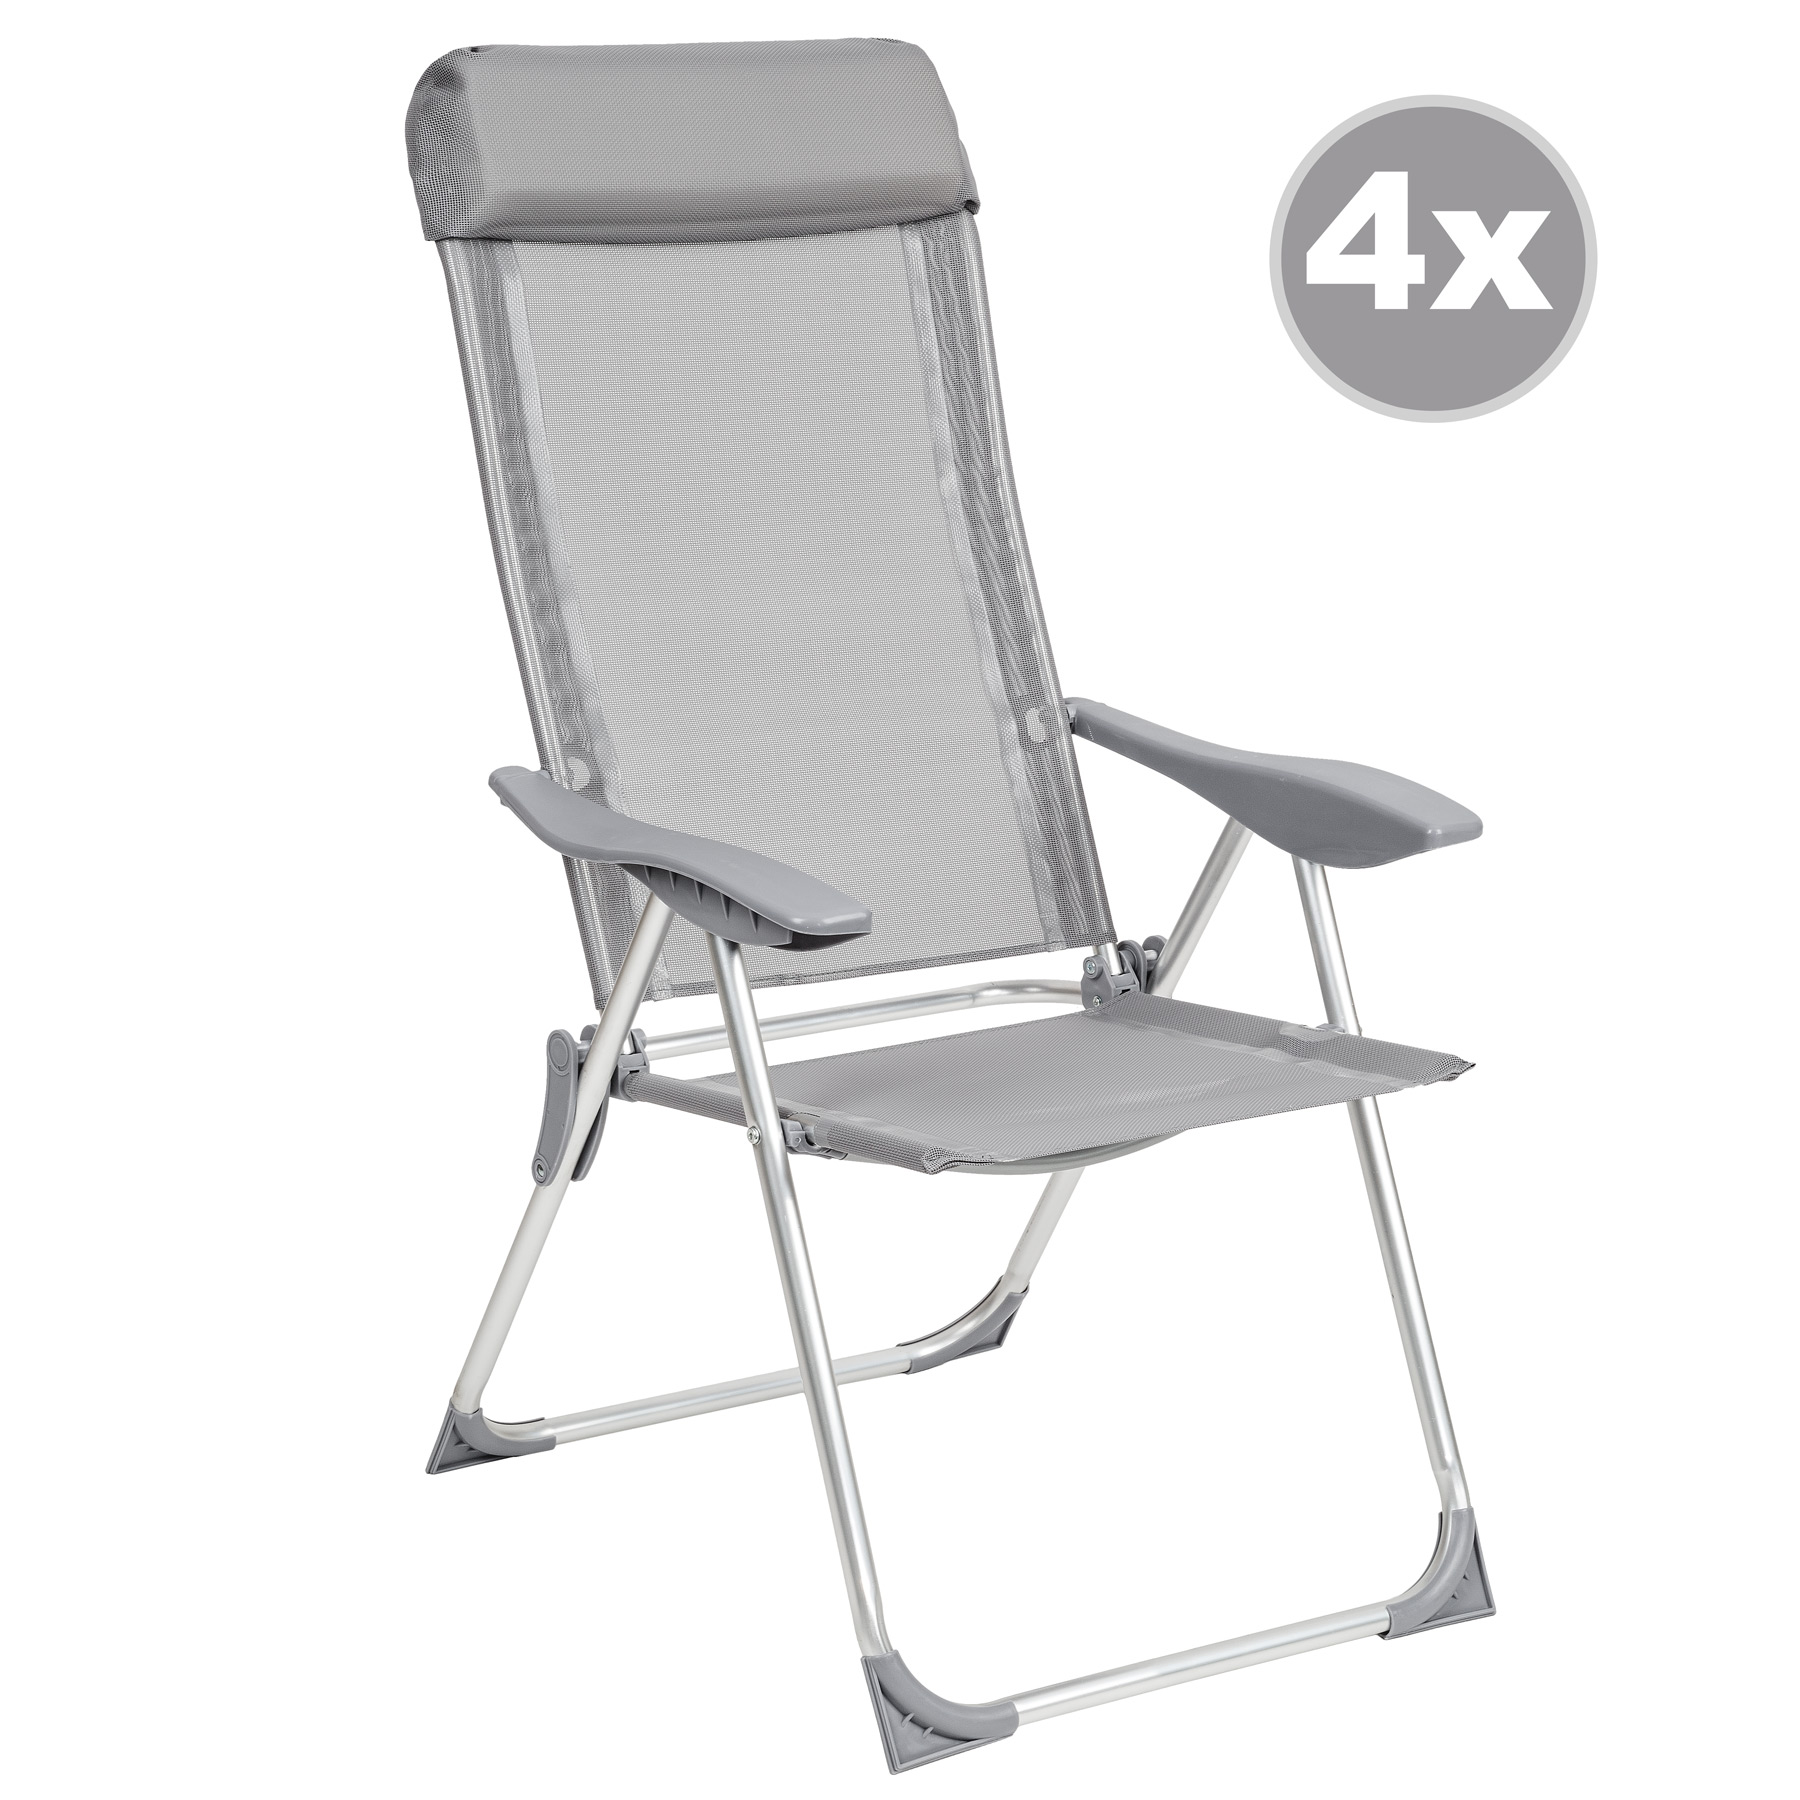 lot de 4 chaises de jardin aluminium pliante camping terrasse balcon gris nouvea ebay. Black Bedroom Furniture Sets. Home Design Ideas